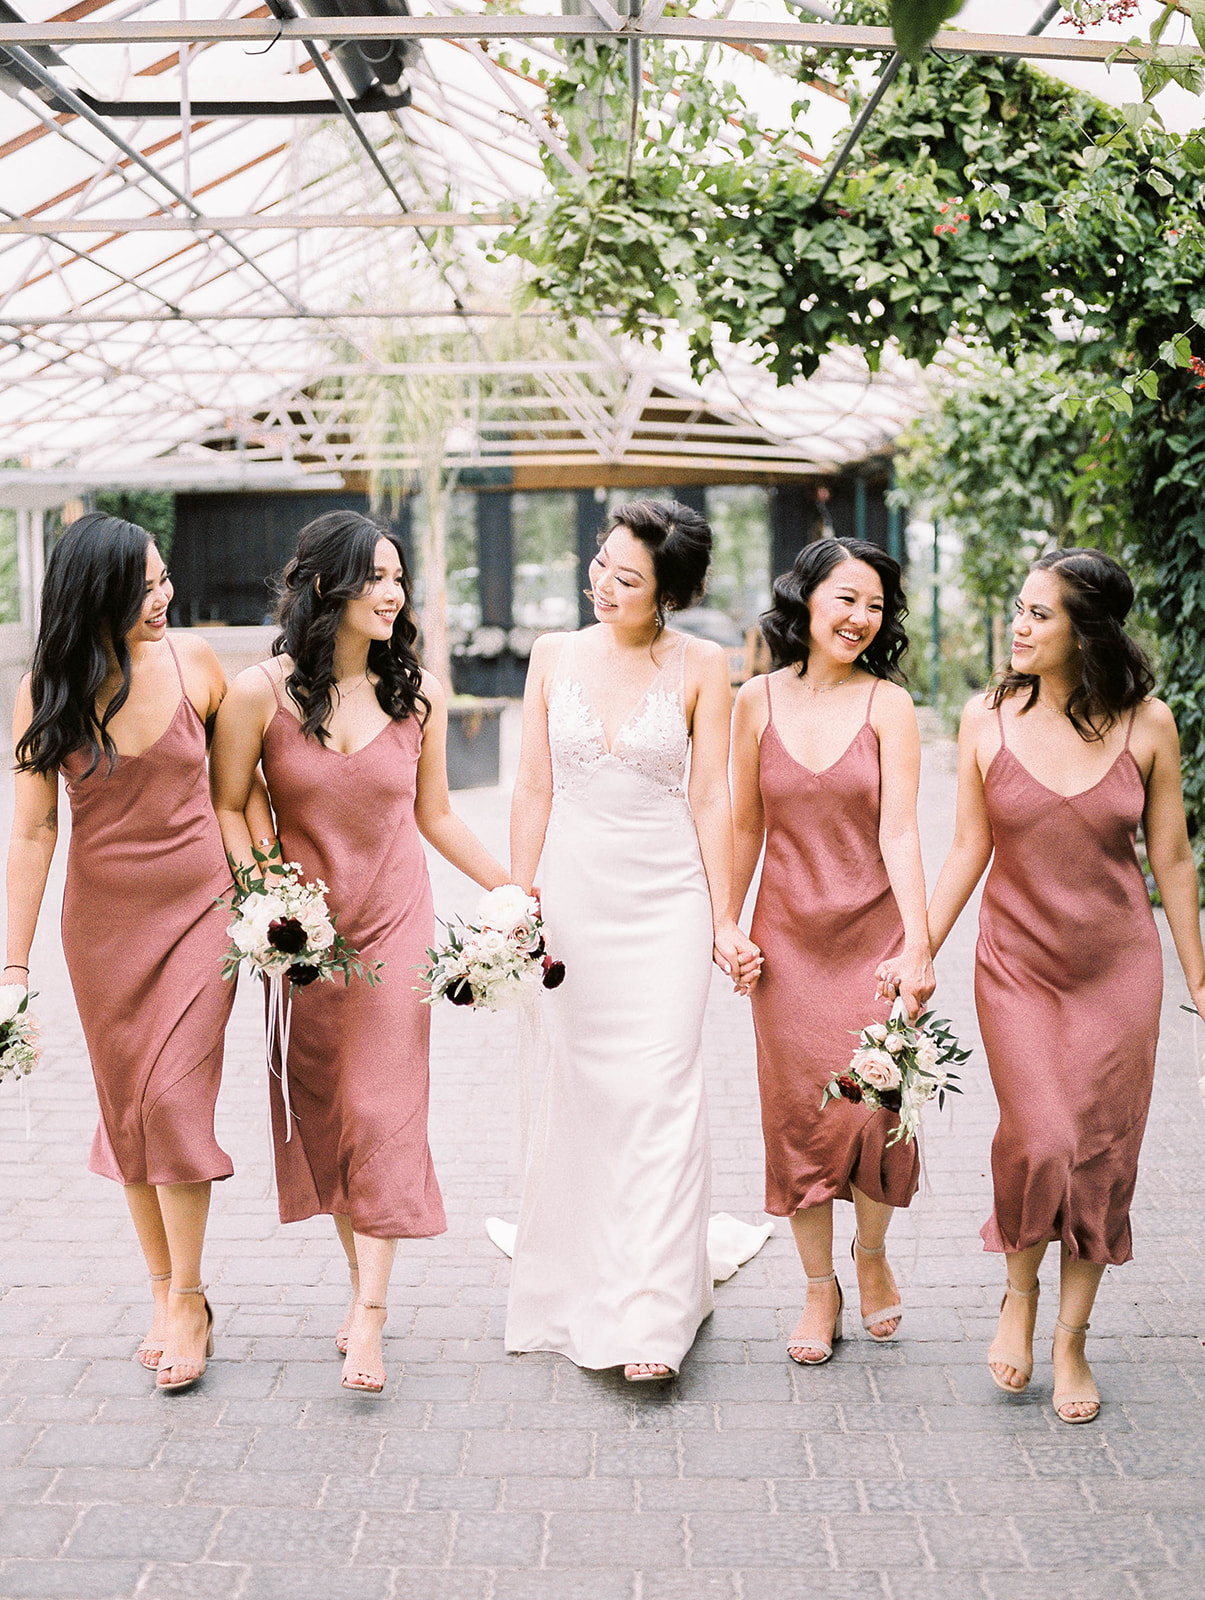 8 Tips for Choosing Your Wedding Photographer // Tips from the Pros - Nicole Delaine on the Bronte Bride Blog